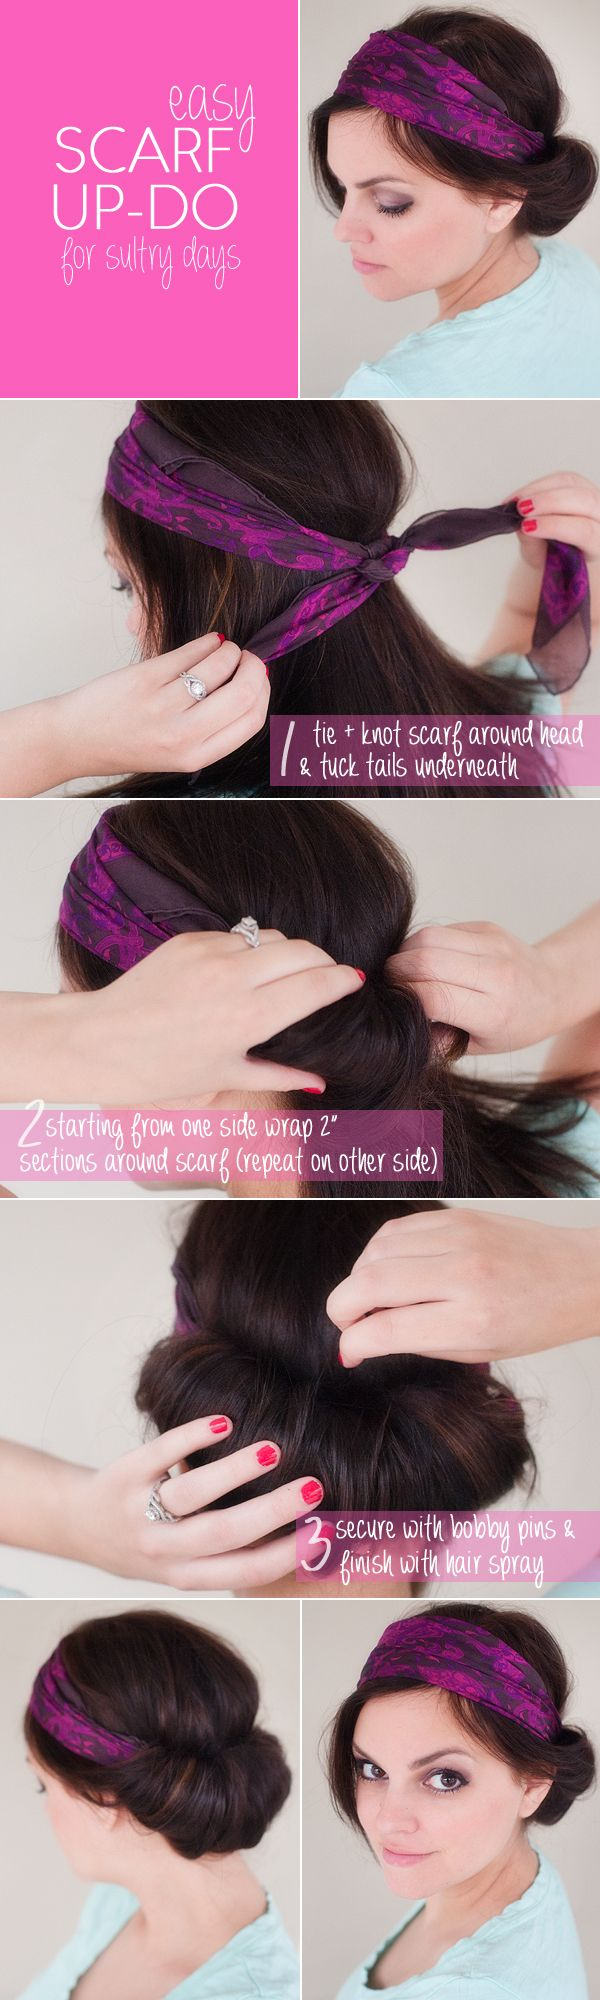 Easy scarf updo for summer ettyplainjanes hair and